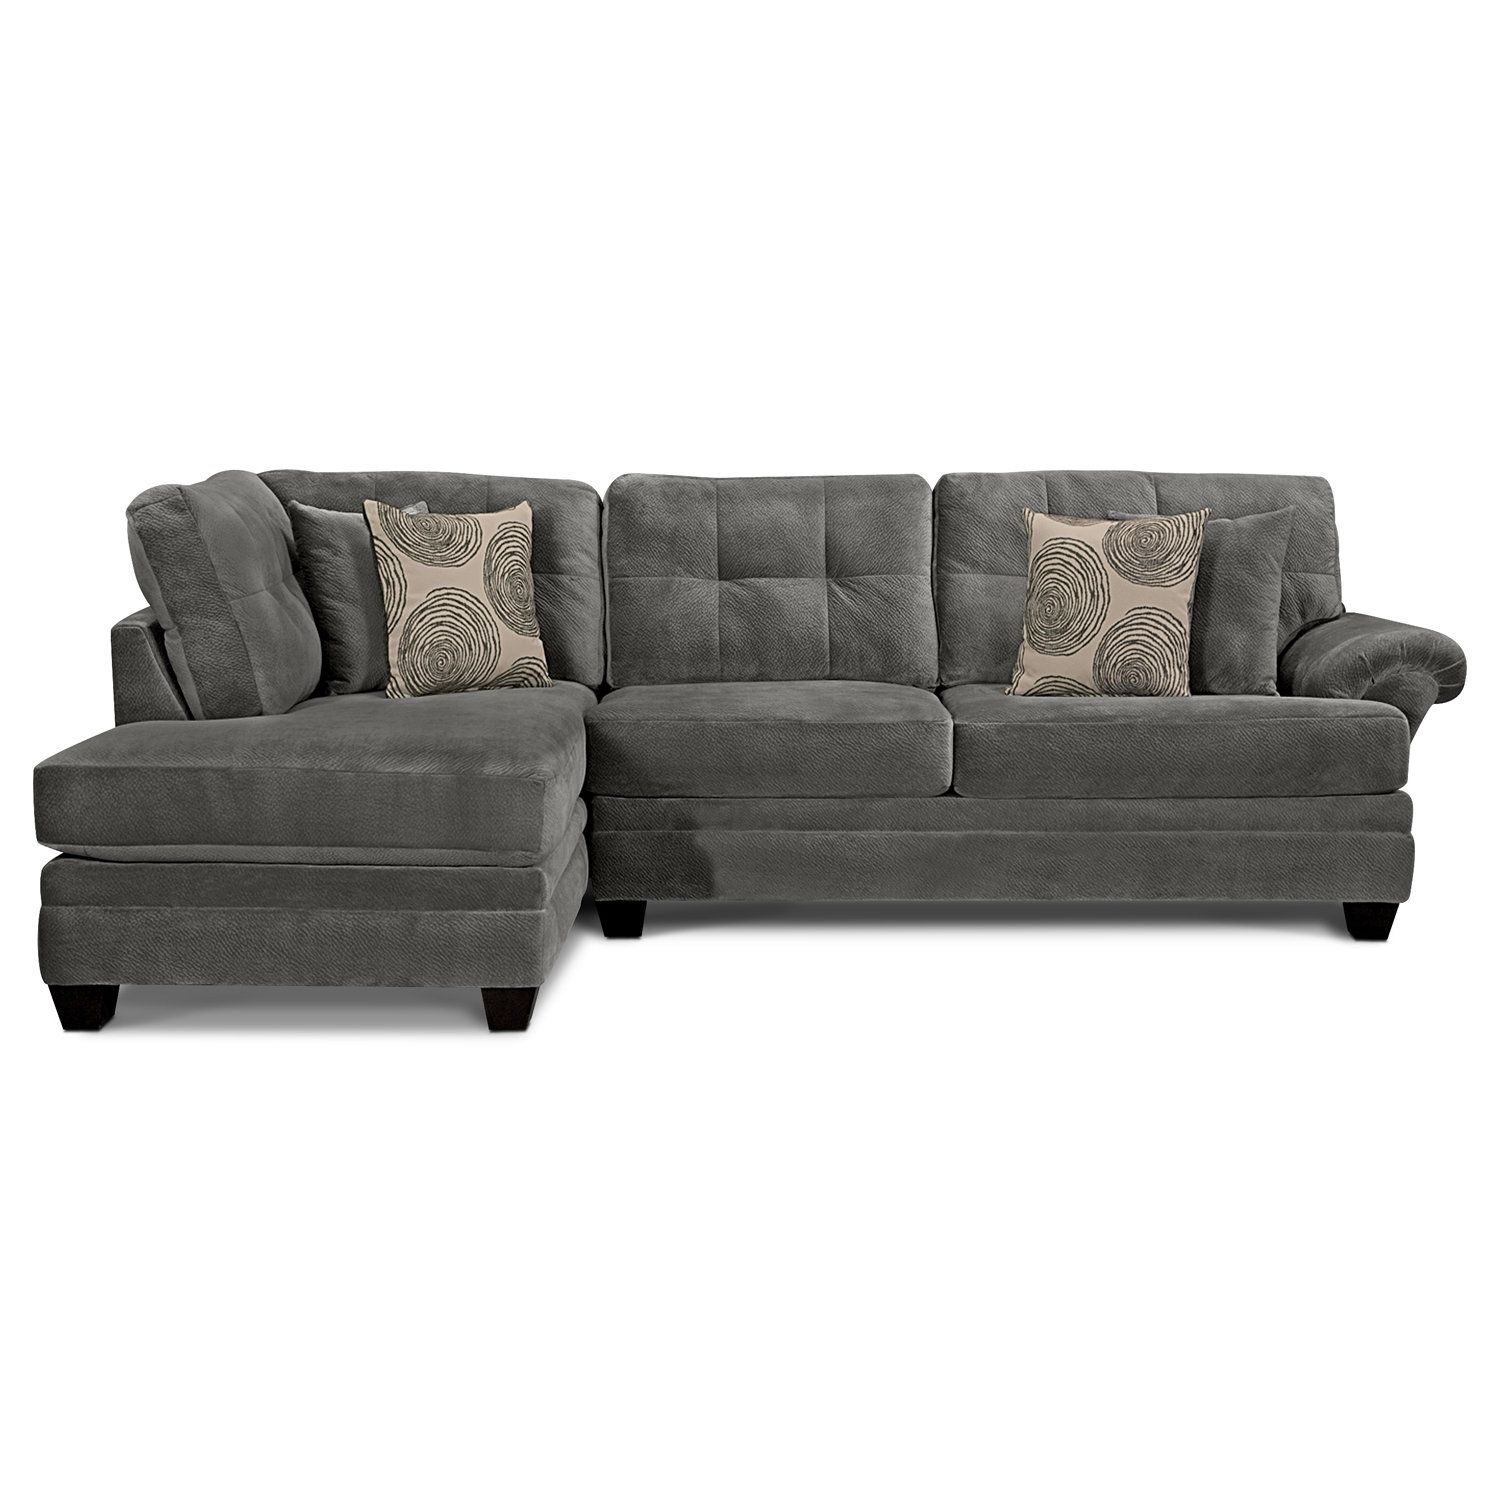 Cordelle 2-Piece Left-Facing Chaise Sectional - Gray | Living room ...